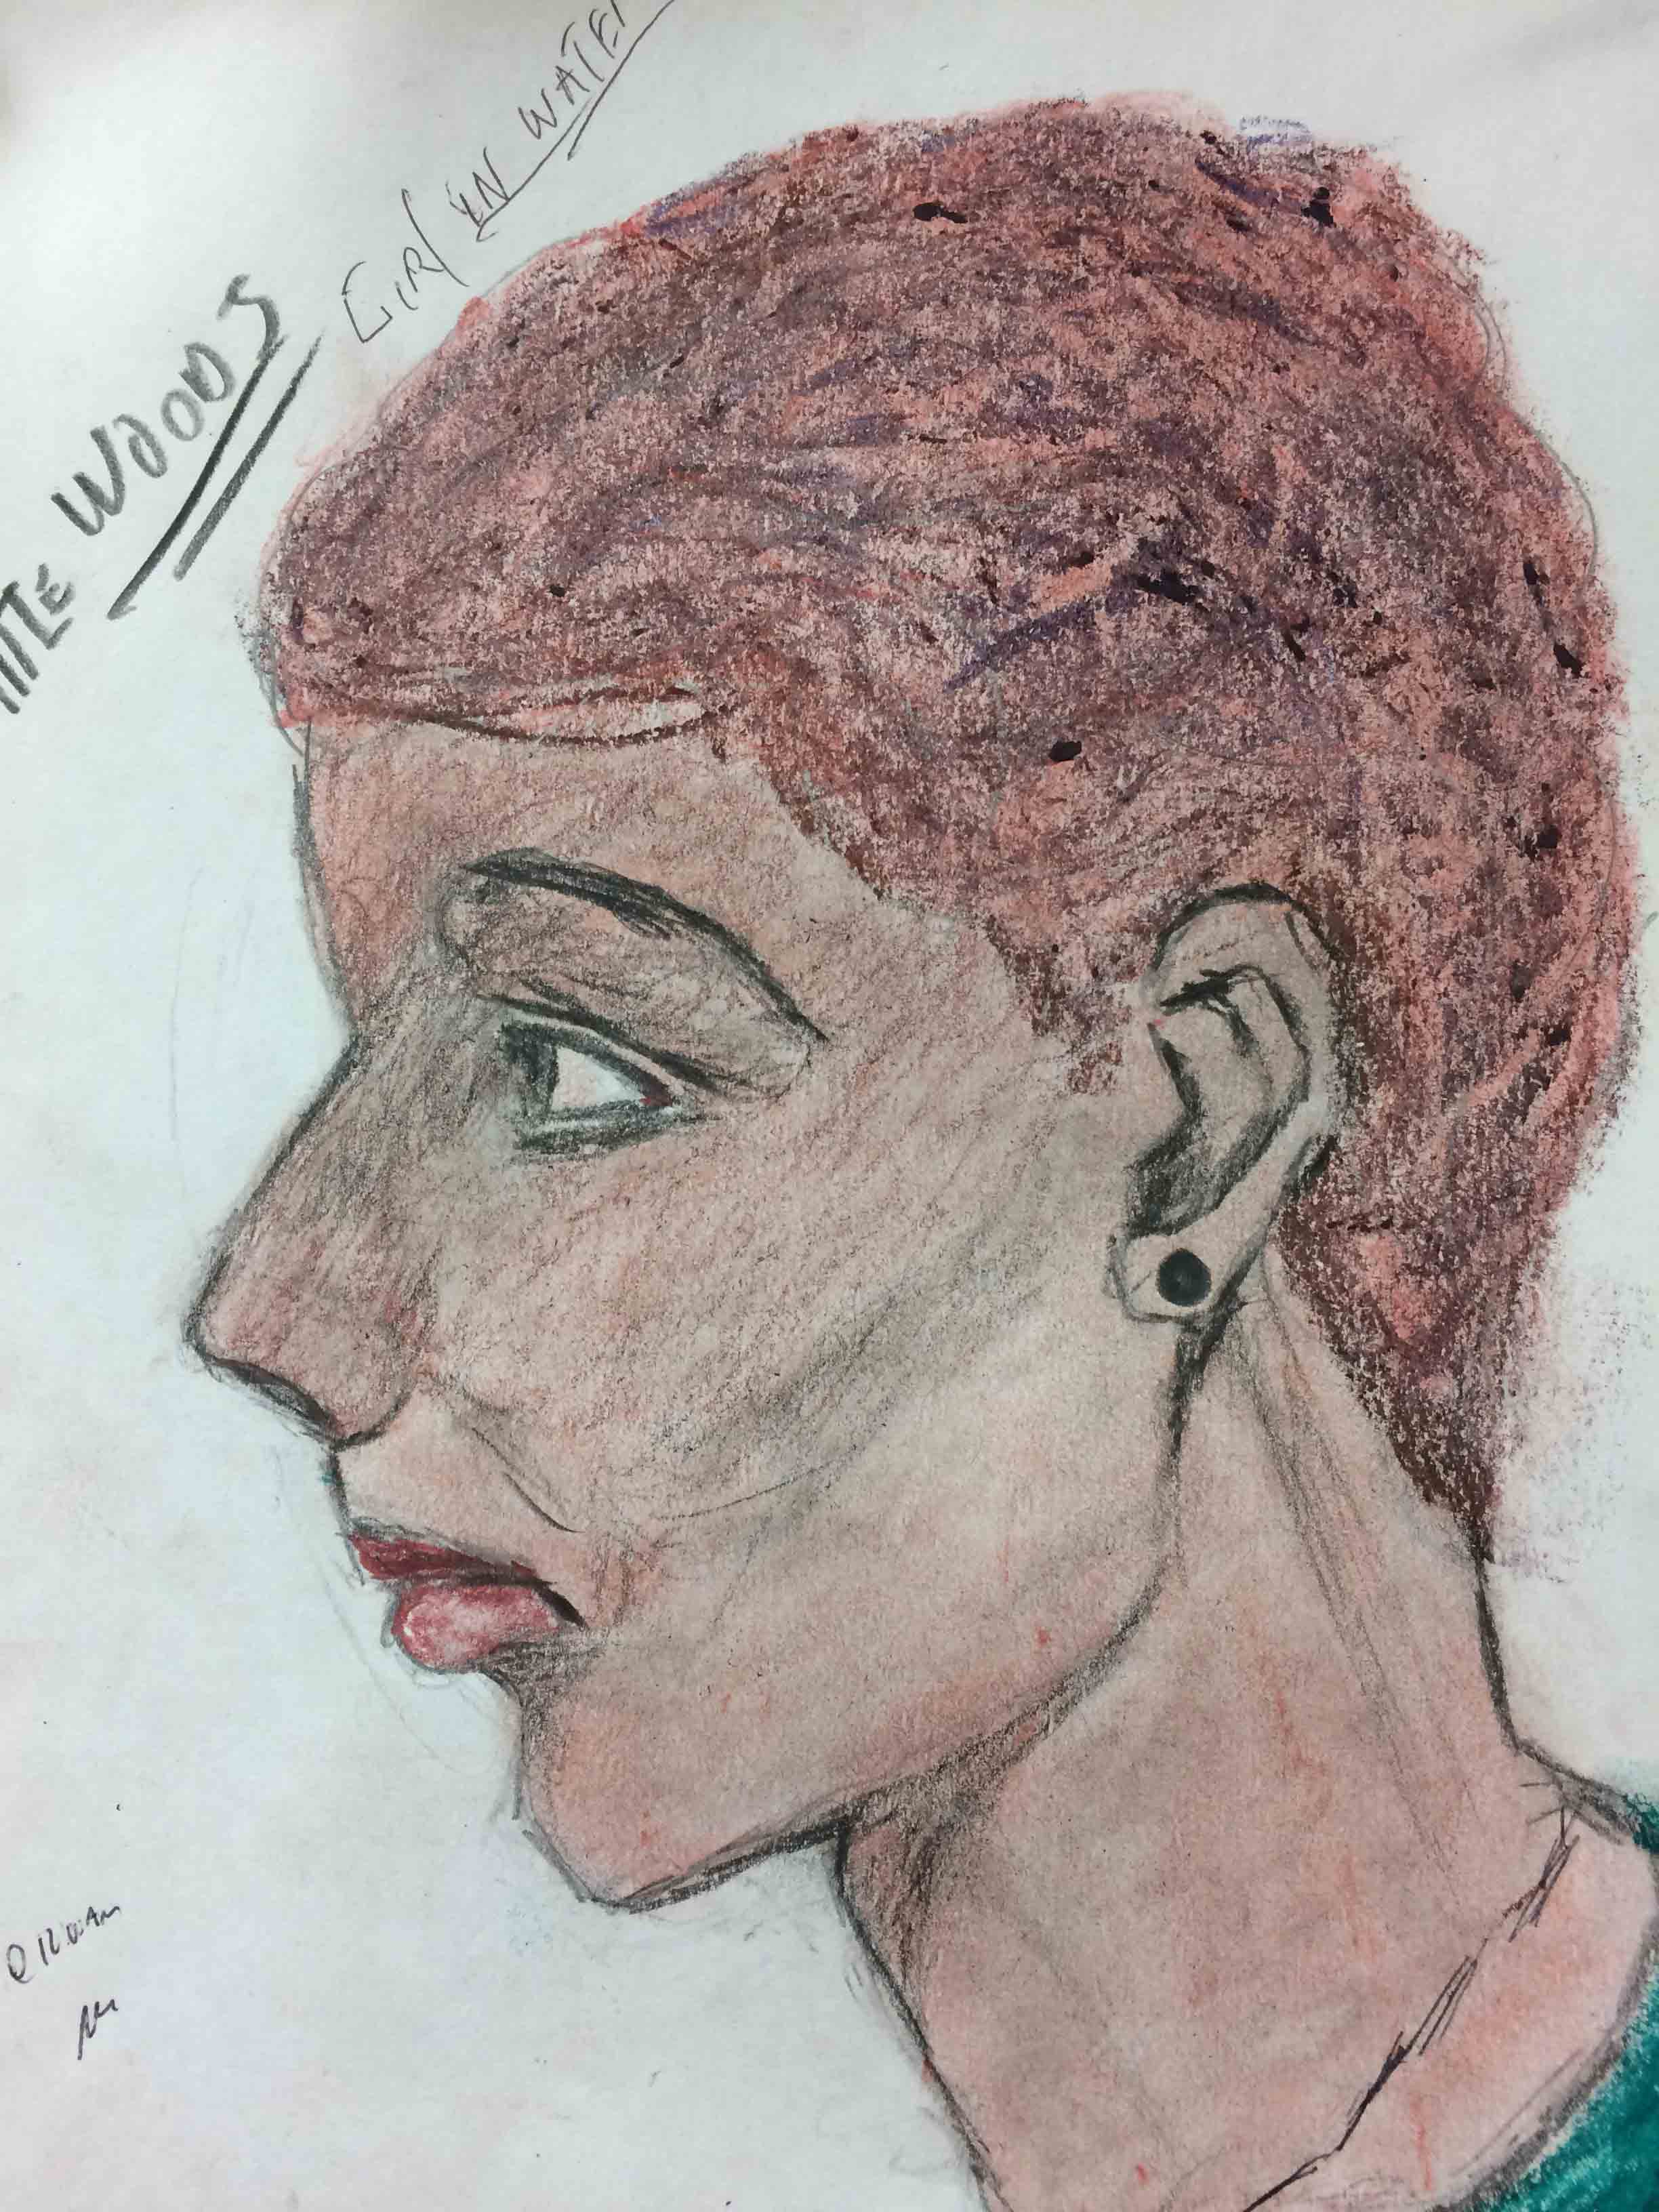 Samuel Little Drawing of Black Female Victim (Killed in 1982, New Orleans)